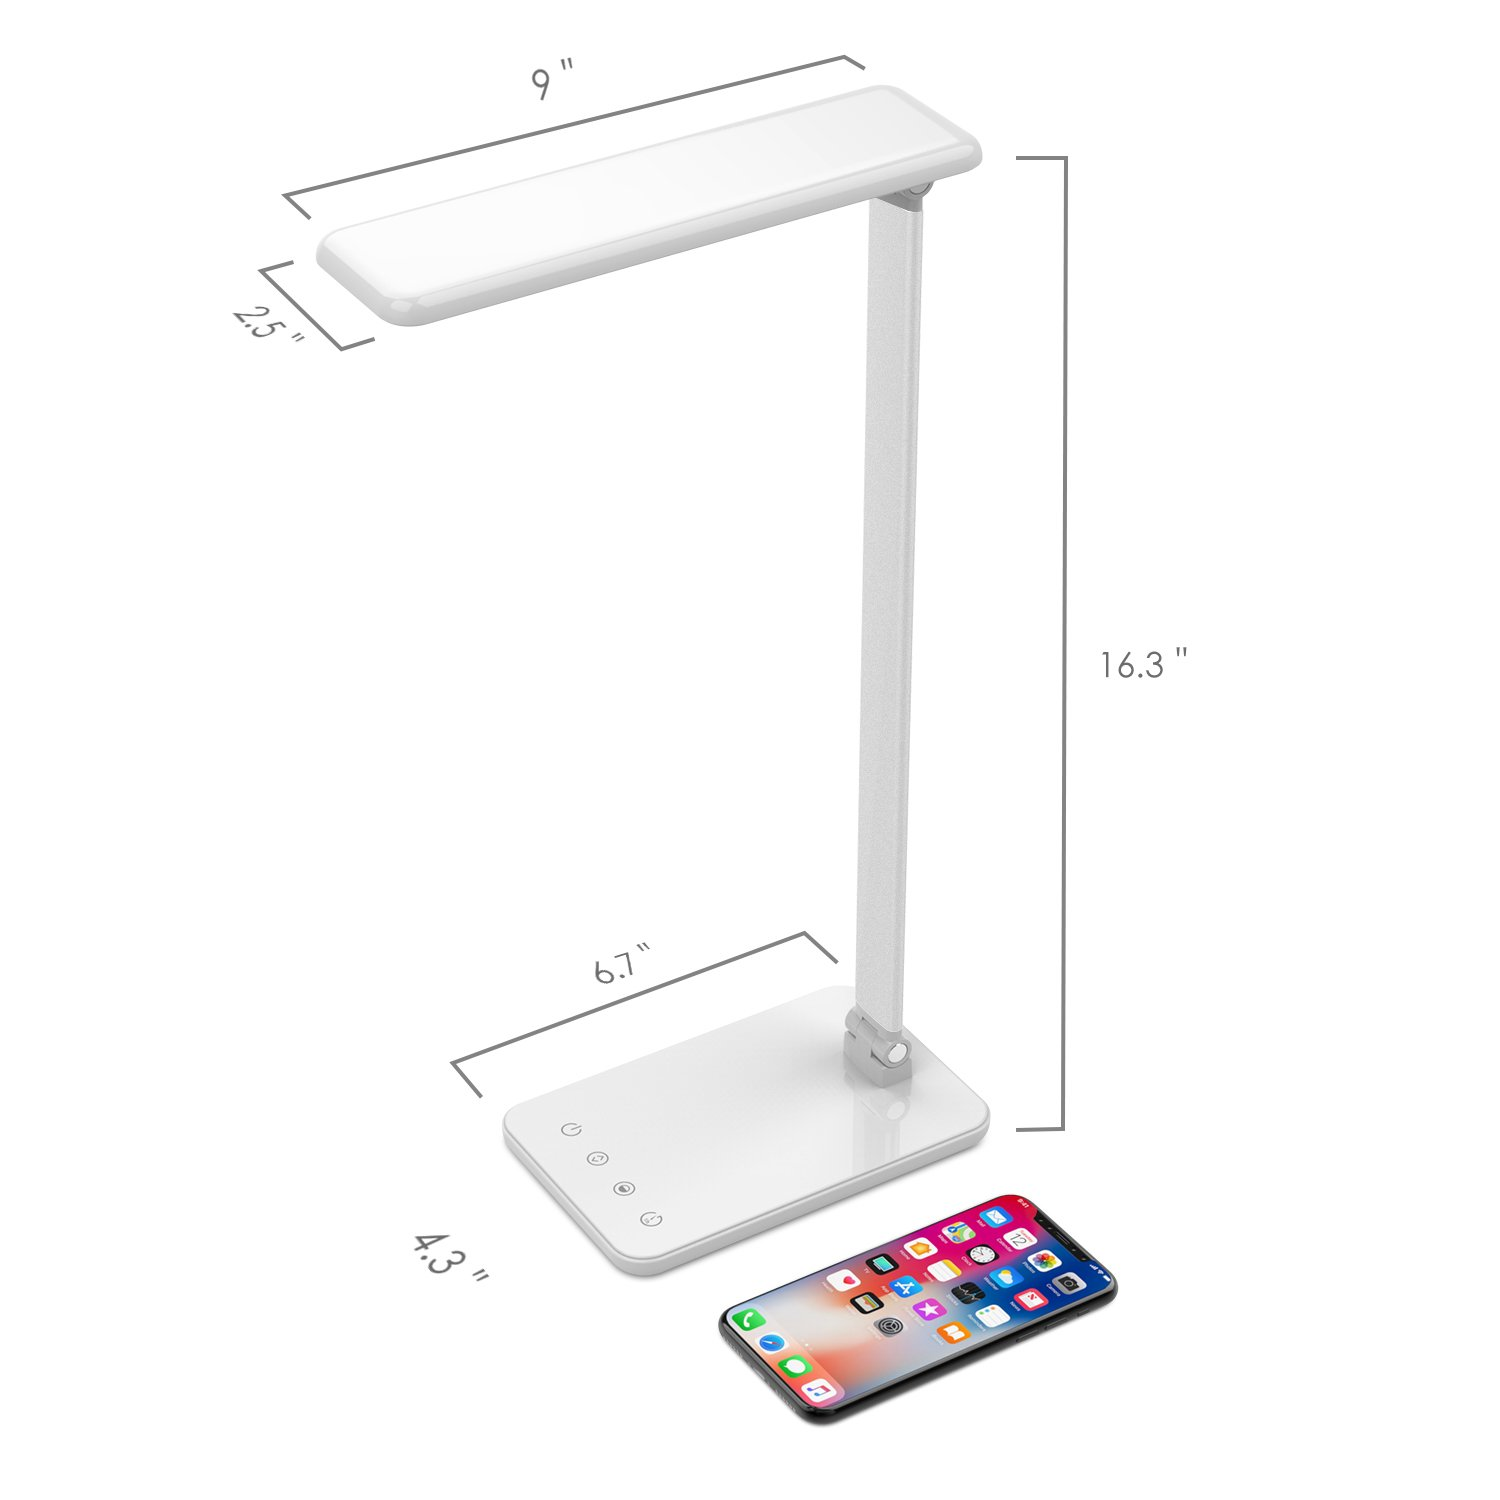 MoKo Dimmable LED Desk Lamp, 8W Touch-Sensitive Control Eye-Caring Working / Reading Table Lamp, Continuously Dimmable Brightness & Color Temperature, 1-Hour Auto Timer, Adjustable Arm & Head - WHITE by MoKo (Image #7)